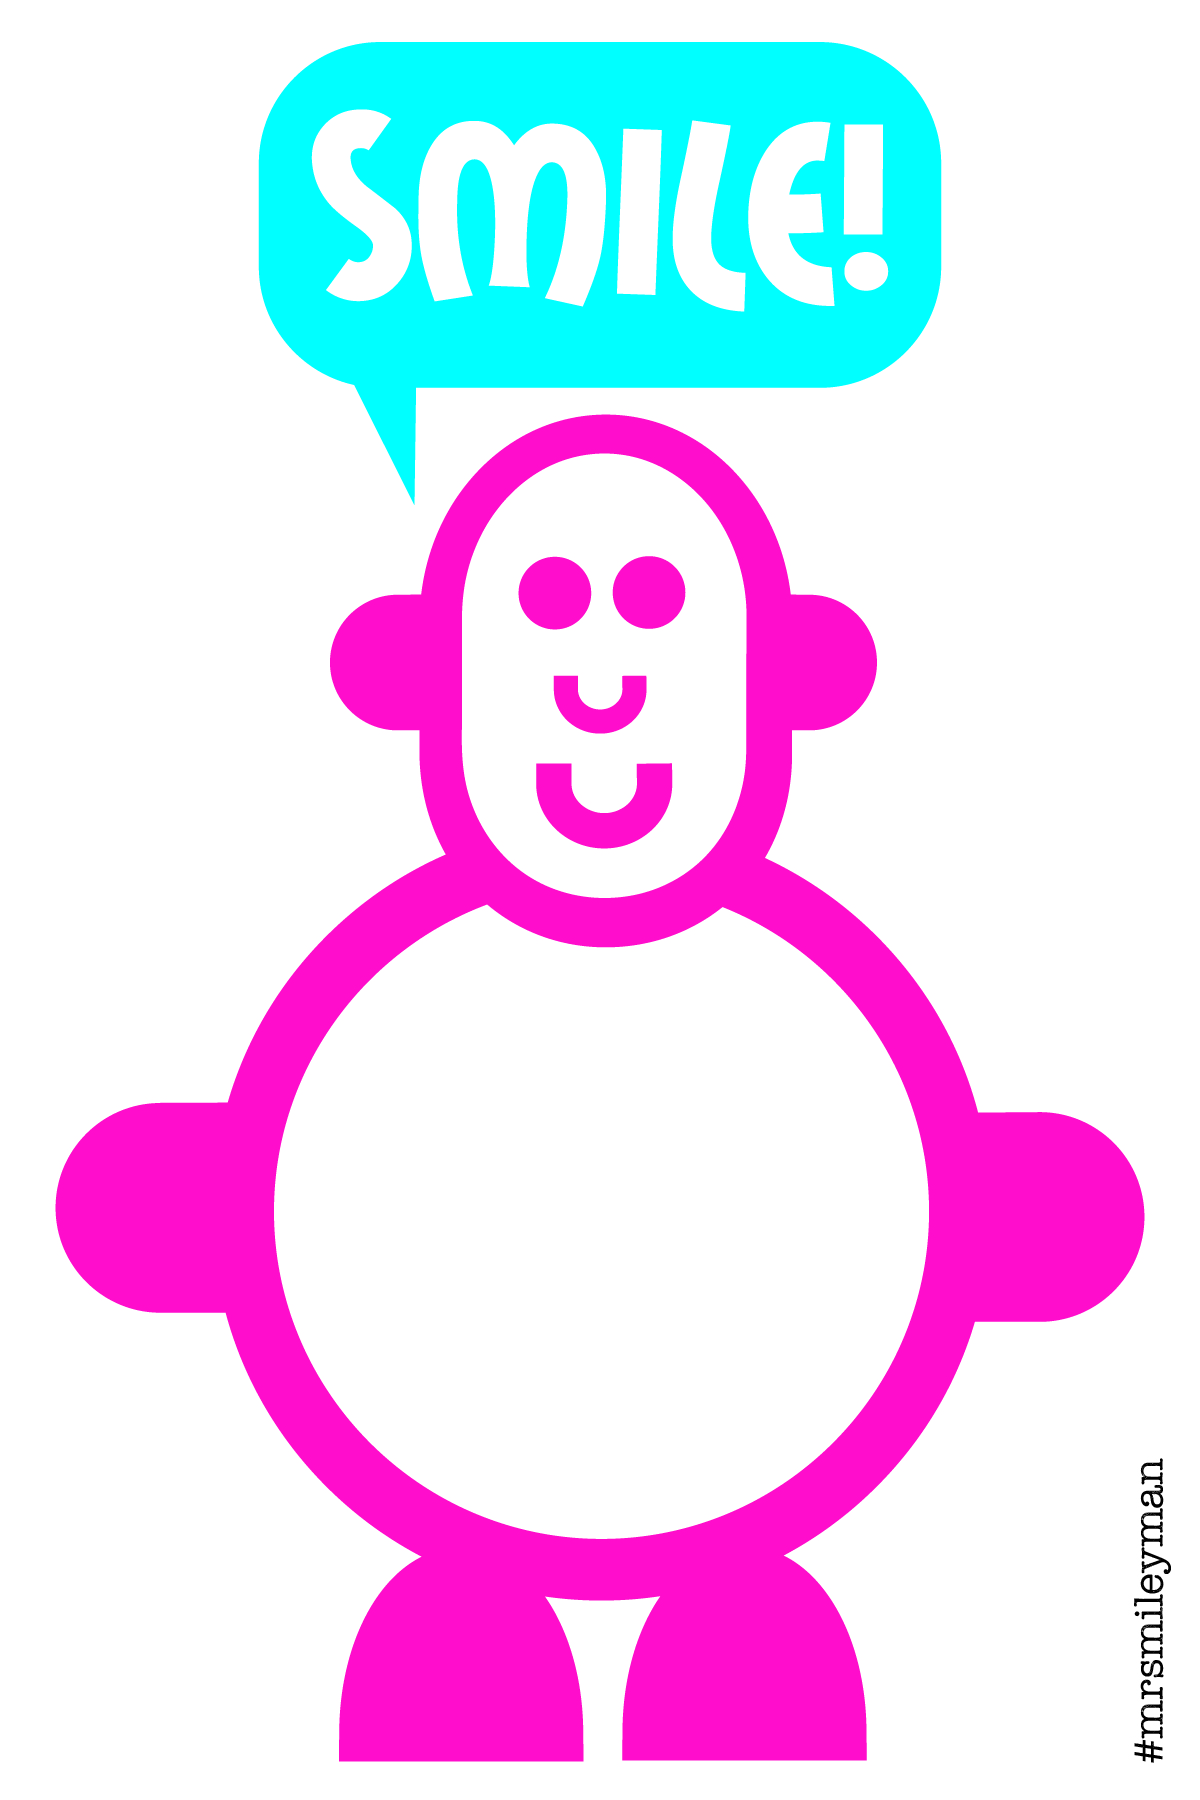 Smiling cute pink character with speech bubble saying Smile